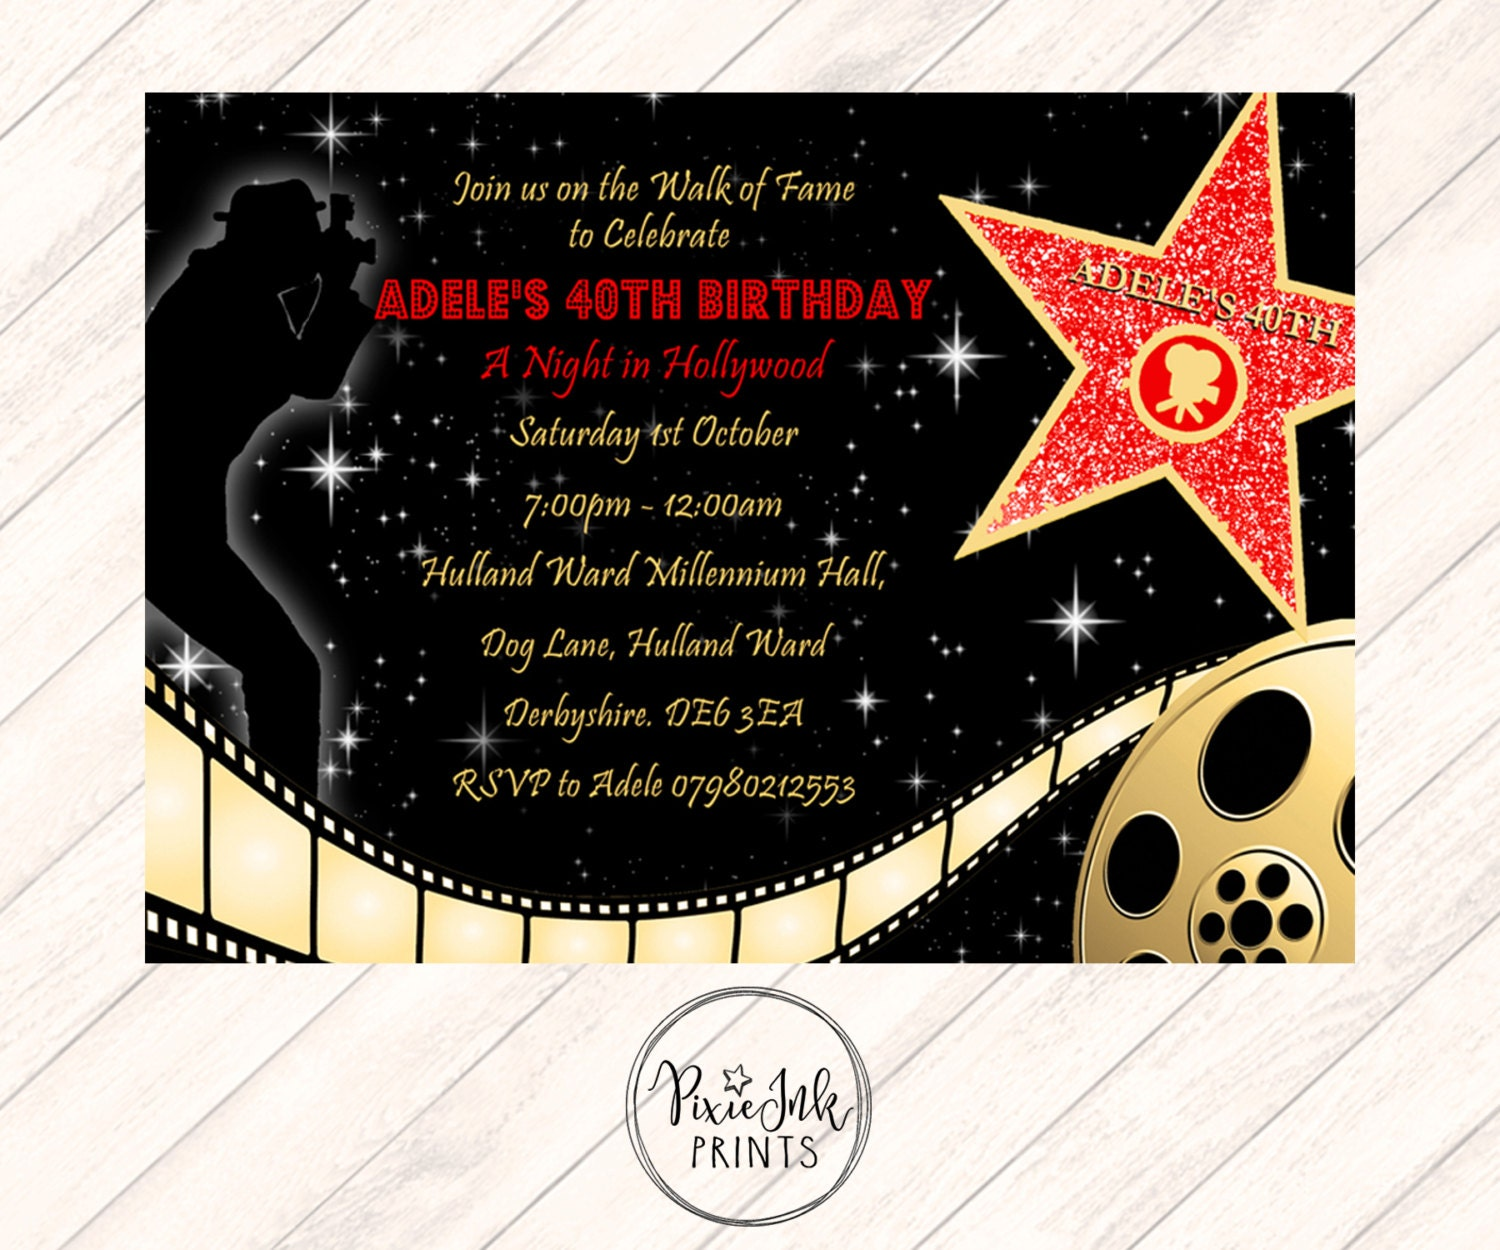 Red Carpet Invitation Hollywood Party Invite Red Carpet